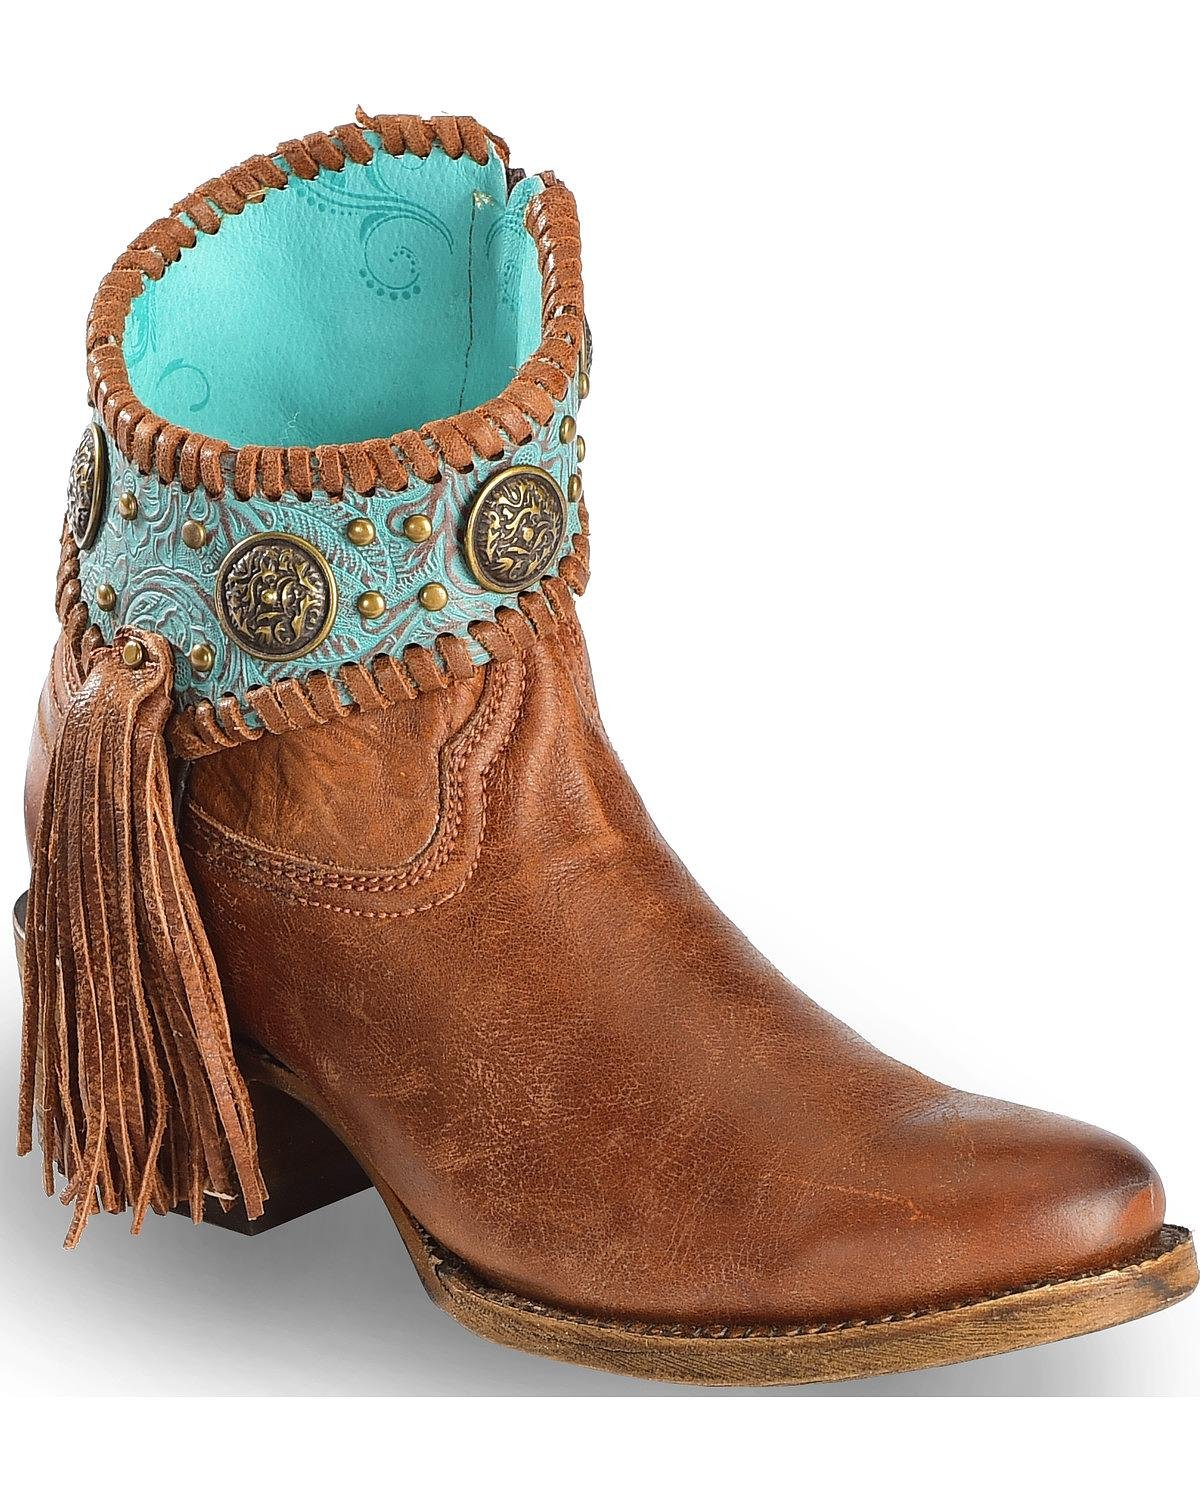 CORRAL Women's Turquoise Fringe Ankle Boot Round Toe - A3196 B01MUWCBMH 8 M US|Cognac